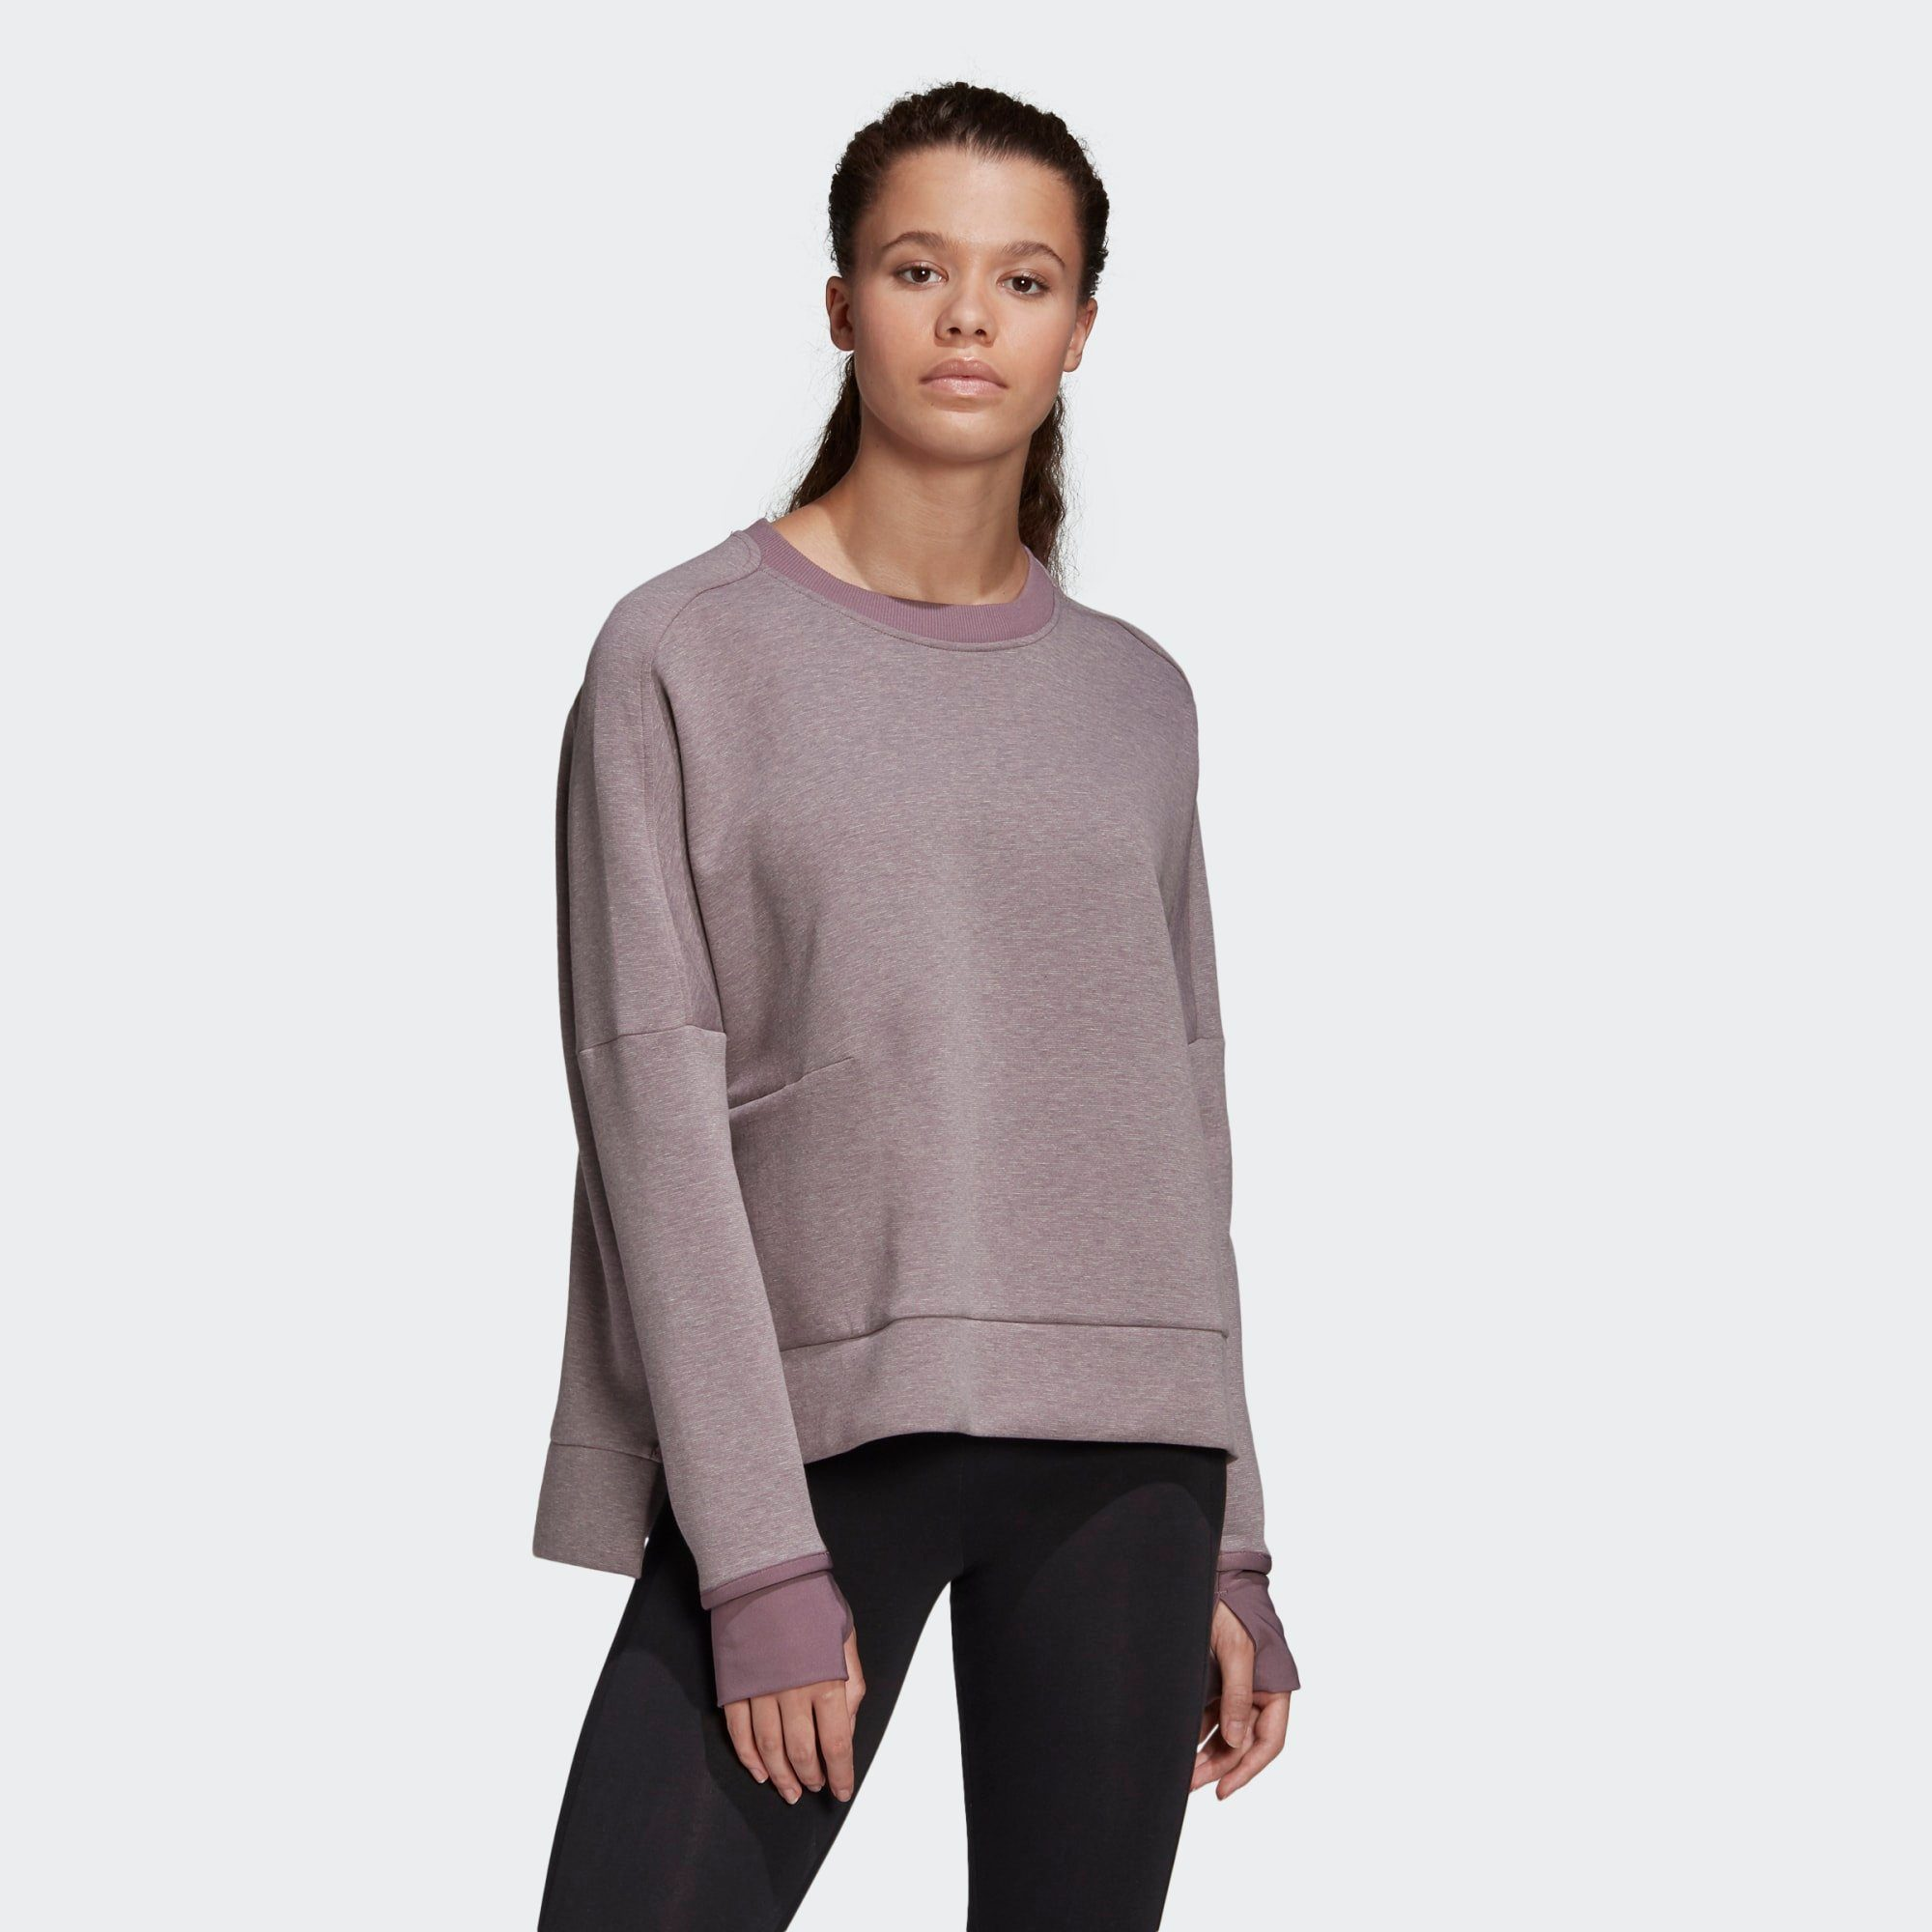 adidas Performance Sweatshirt »Must Haves Versatility Sweatshirt« online kaufen | OTTO